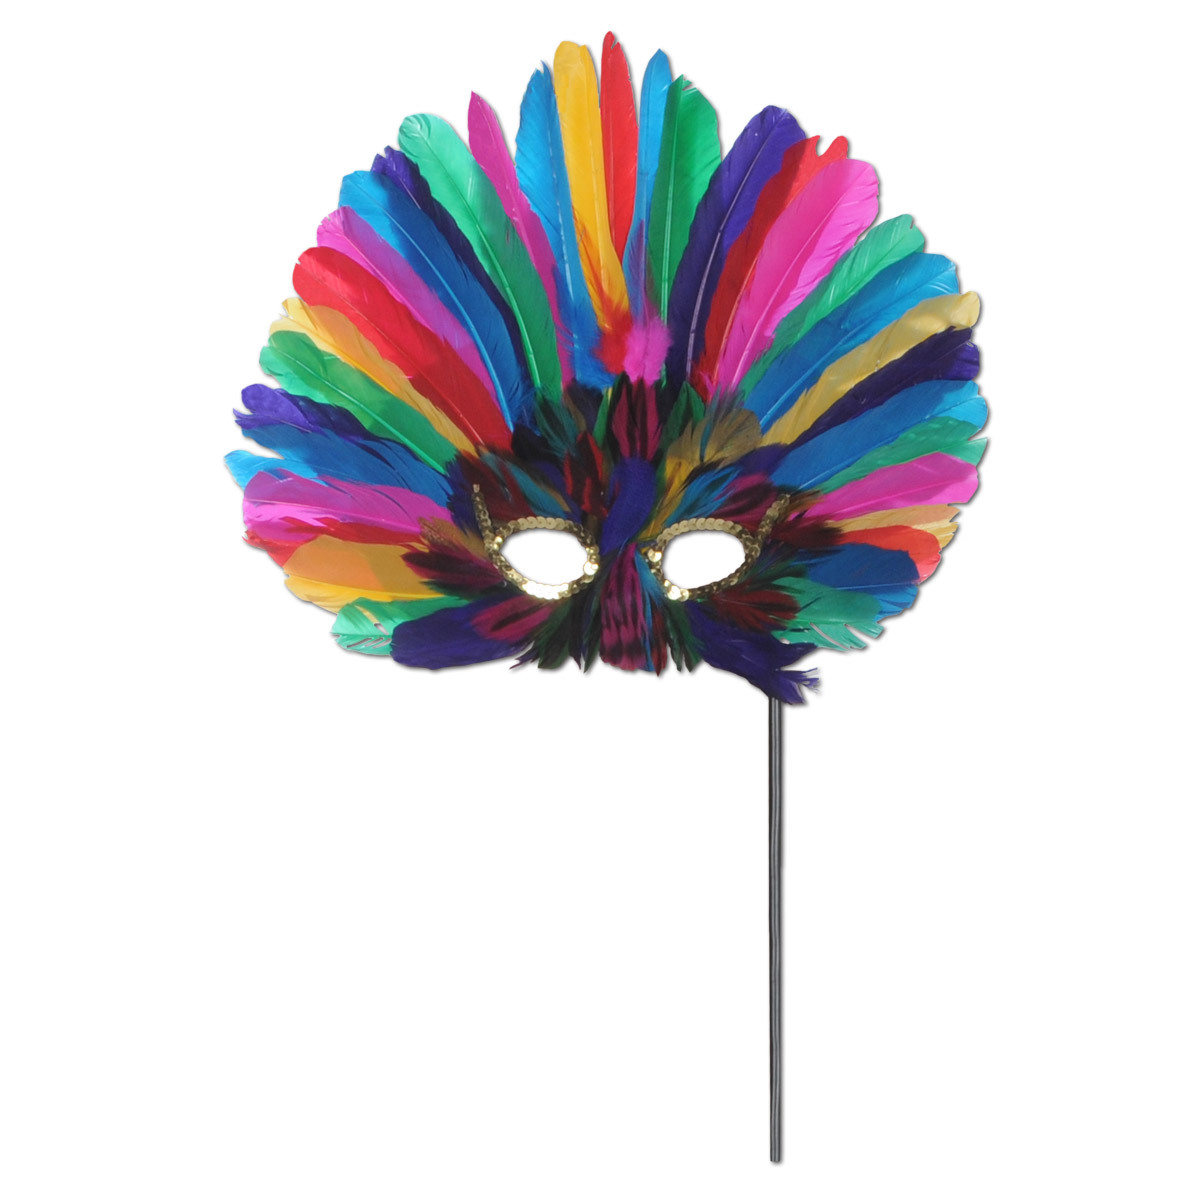 Feathered Mask with Stick (Pack of 12) multi-colored, pink, cerise, blue, green, purple, gold, yellow, feather, mask, masquerade, mardi gras, party, stick, favor, decoration, wholesale, inexpensive, bulk